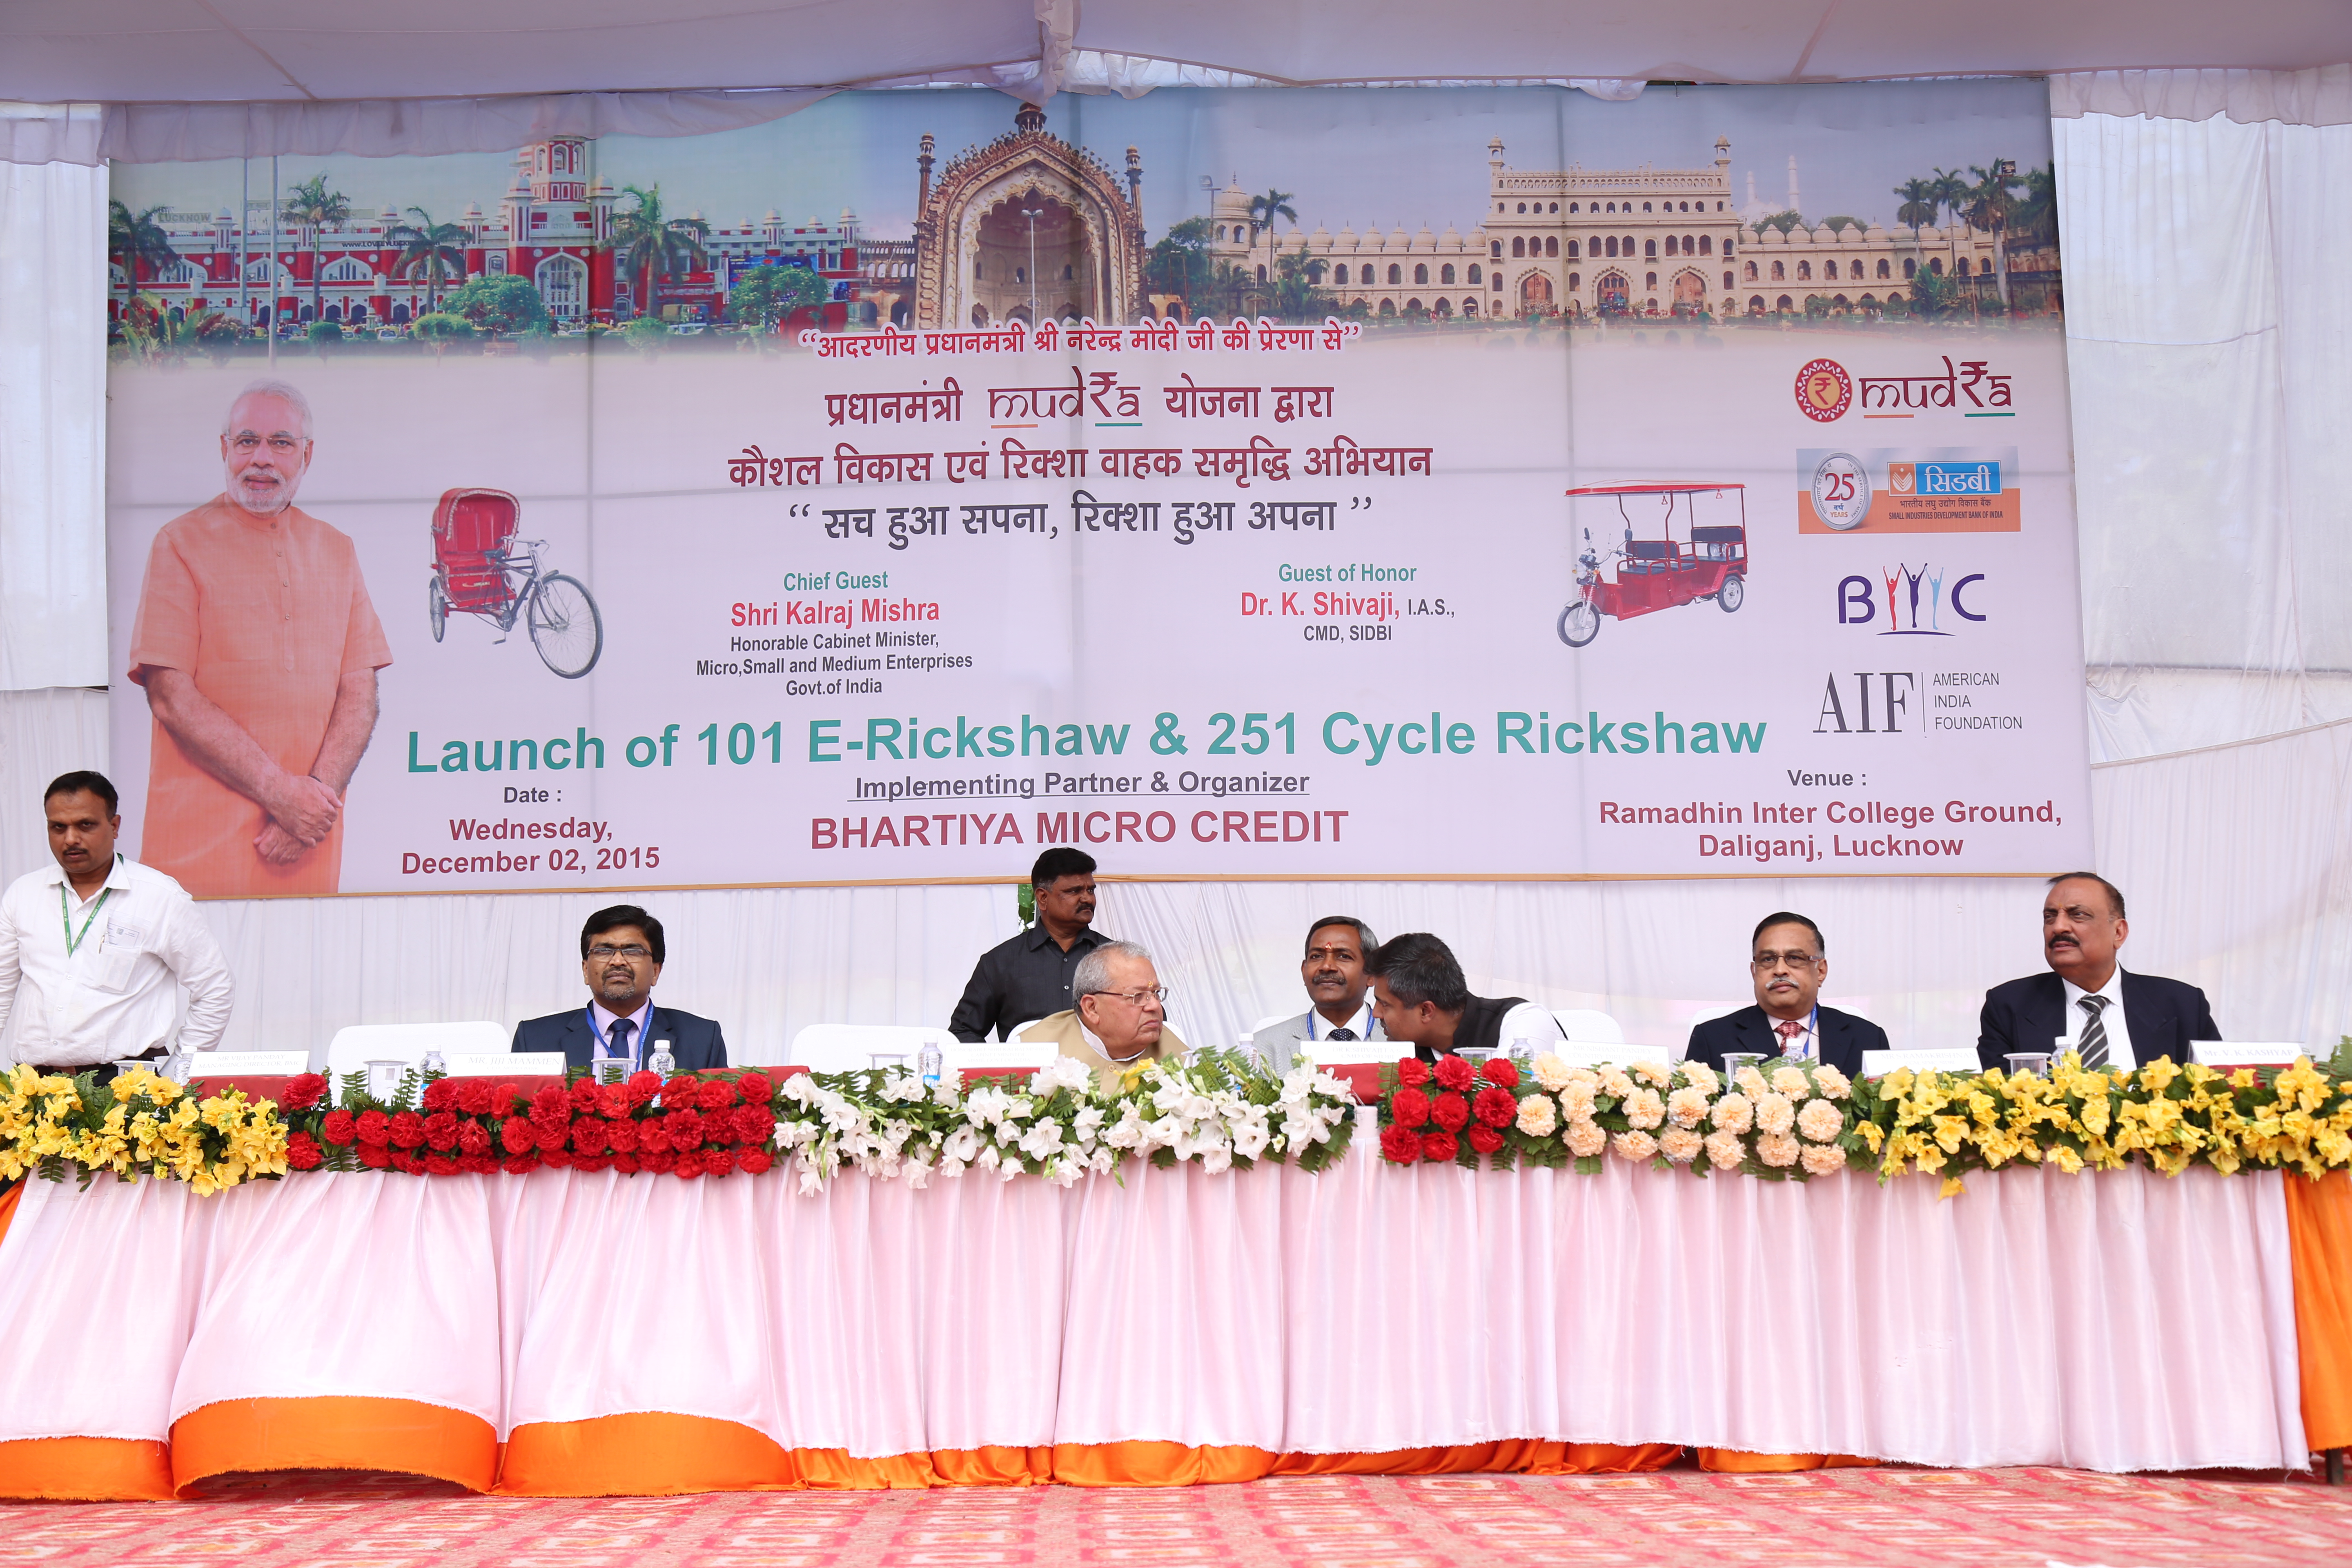 Launch of E-Rickshaw at Lucknow